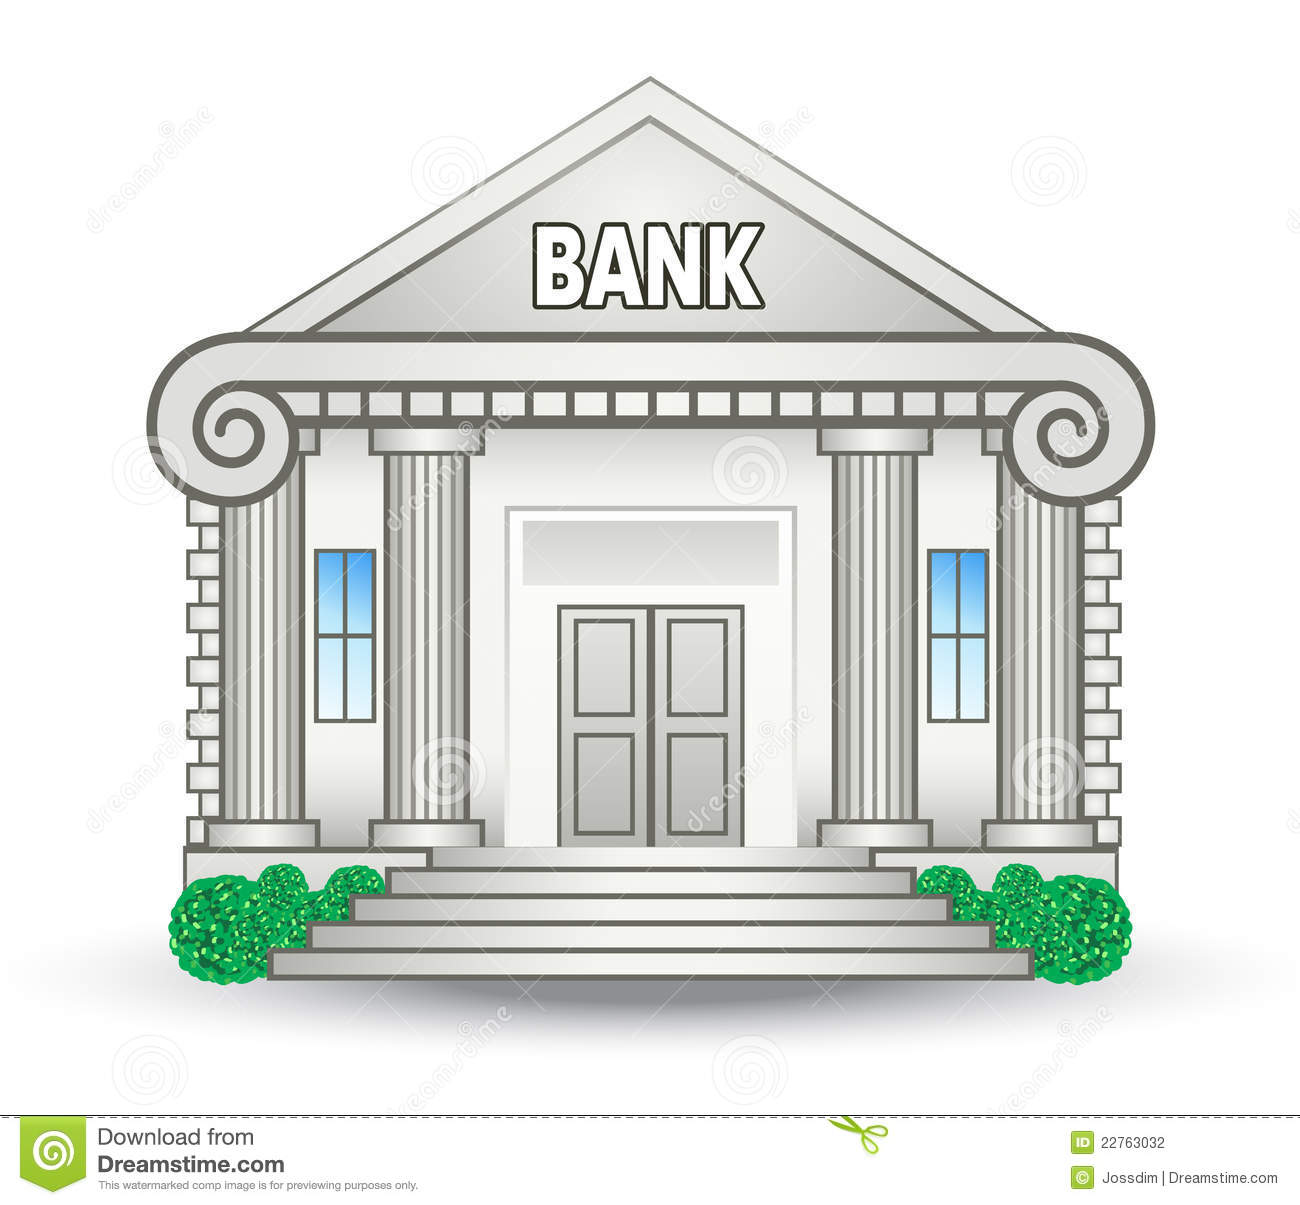 Collection of 14 free Bank clipart bank building bill clipart dollar.